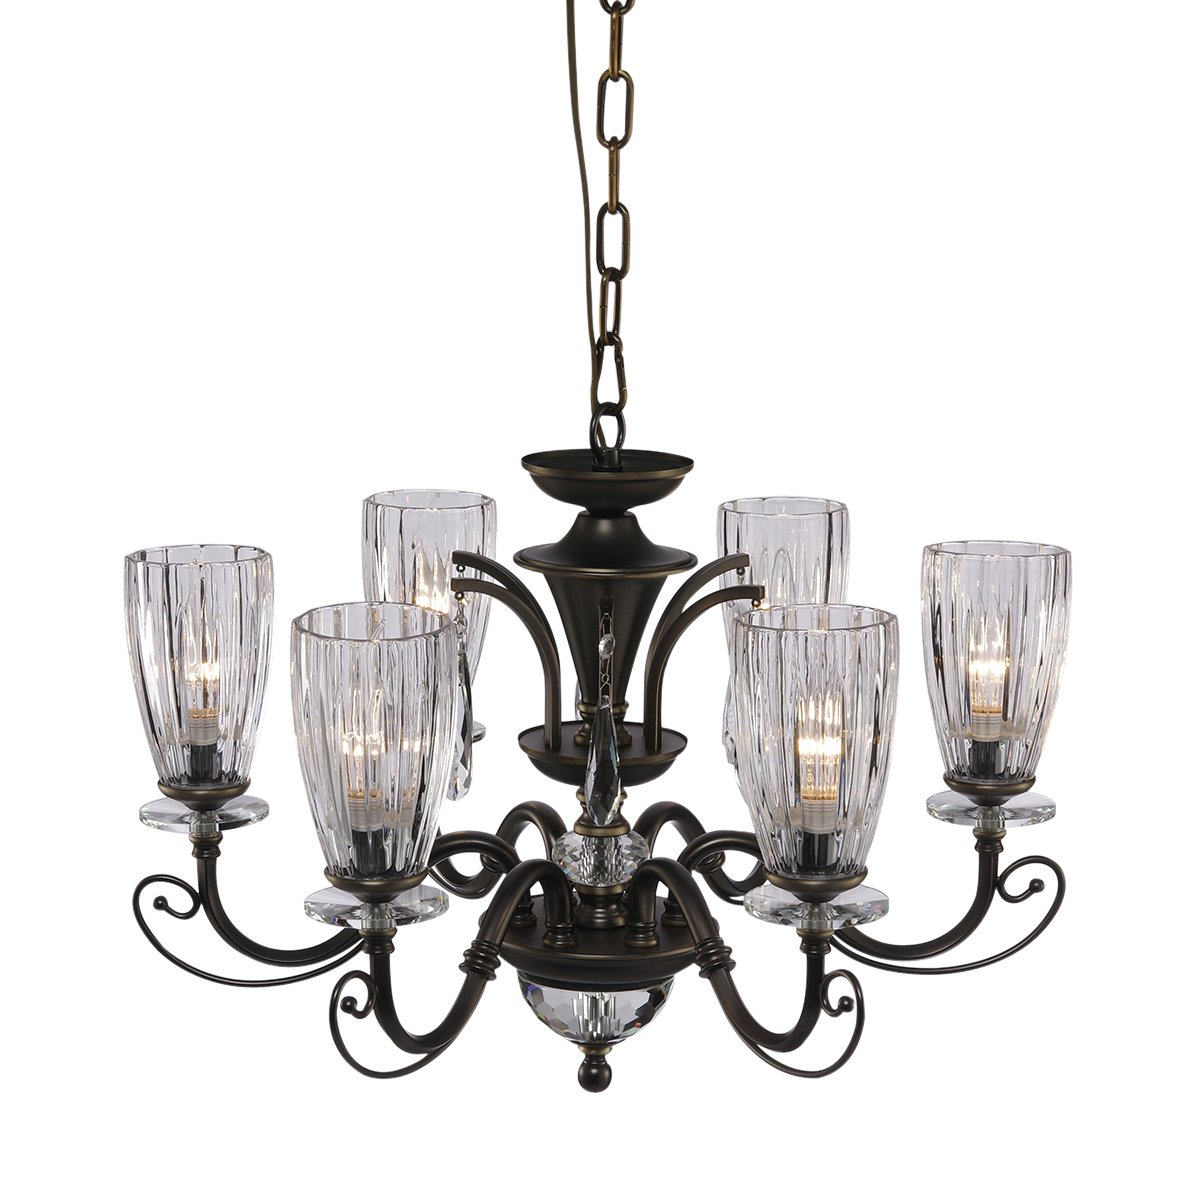 QIRUI Luxury Retro Iron Chandelier Fixture With E12 Lamp Sockets,Ceiling Lighting Holder With Transformer and Lampshade,Decoration for Home Hotel Hall Restaurant 8672-6